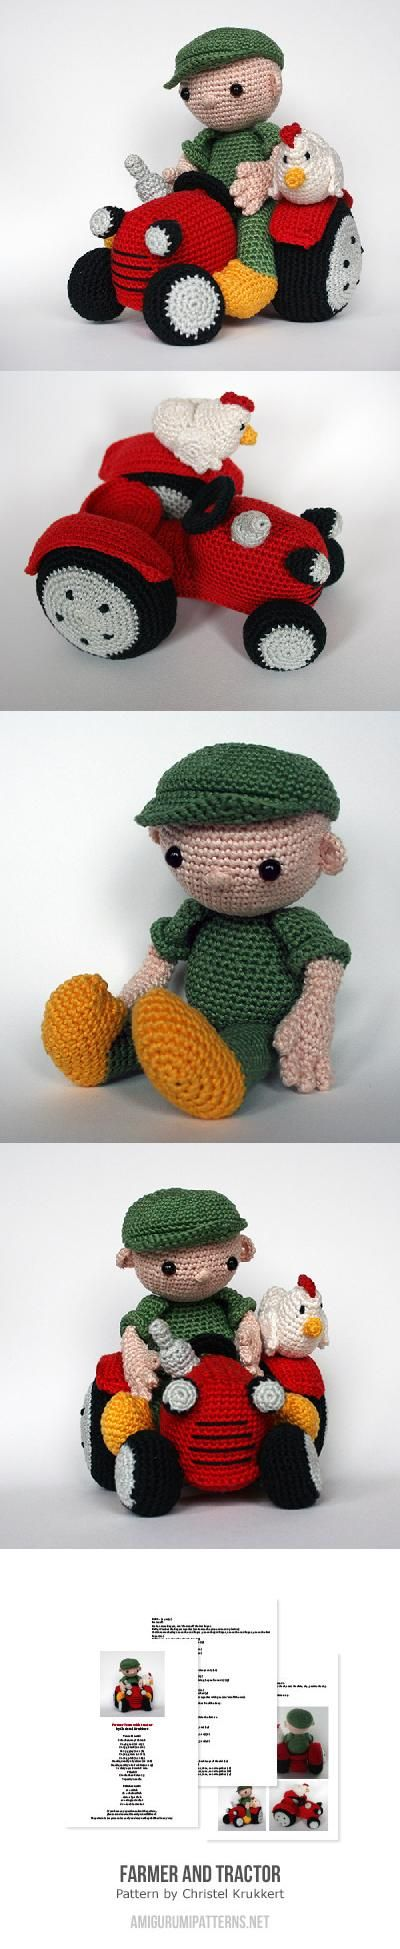 Farmer And Tractor Amigurumi Pattern